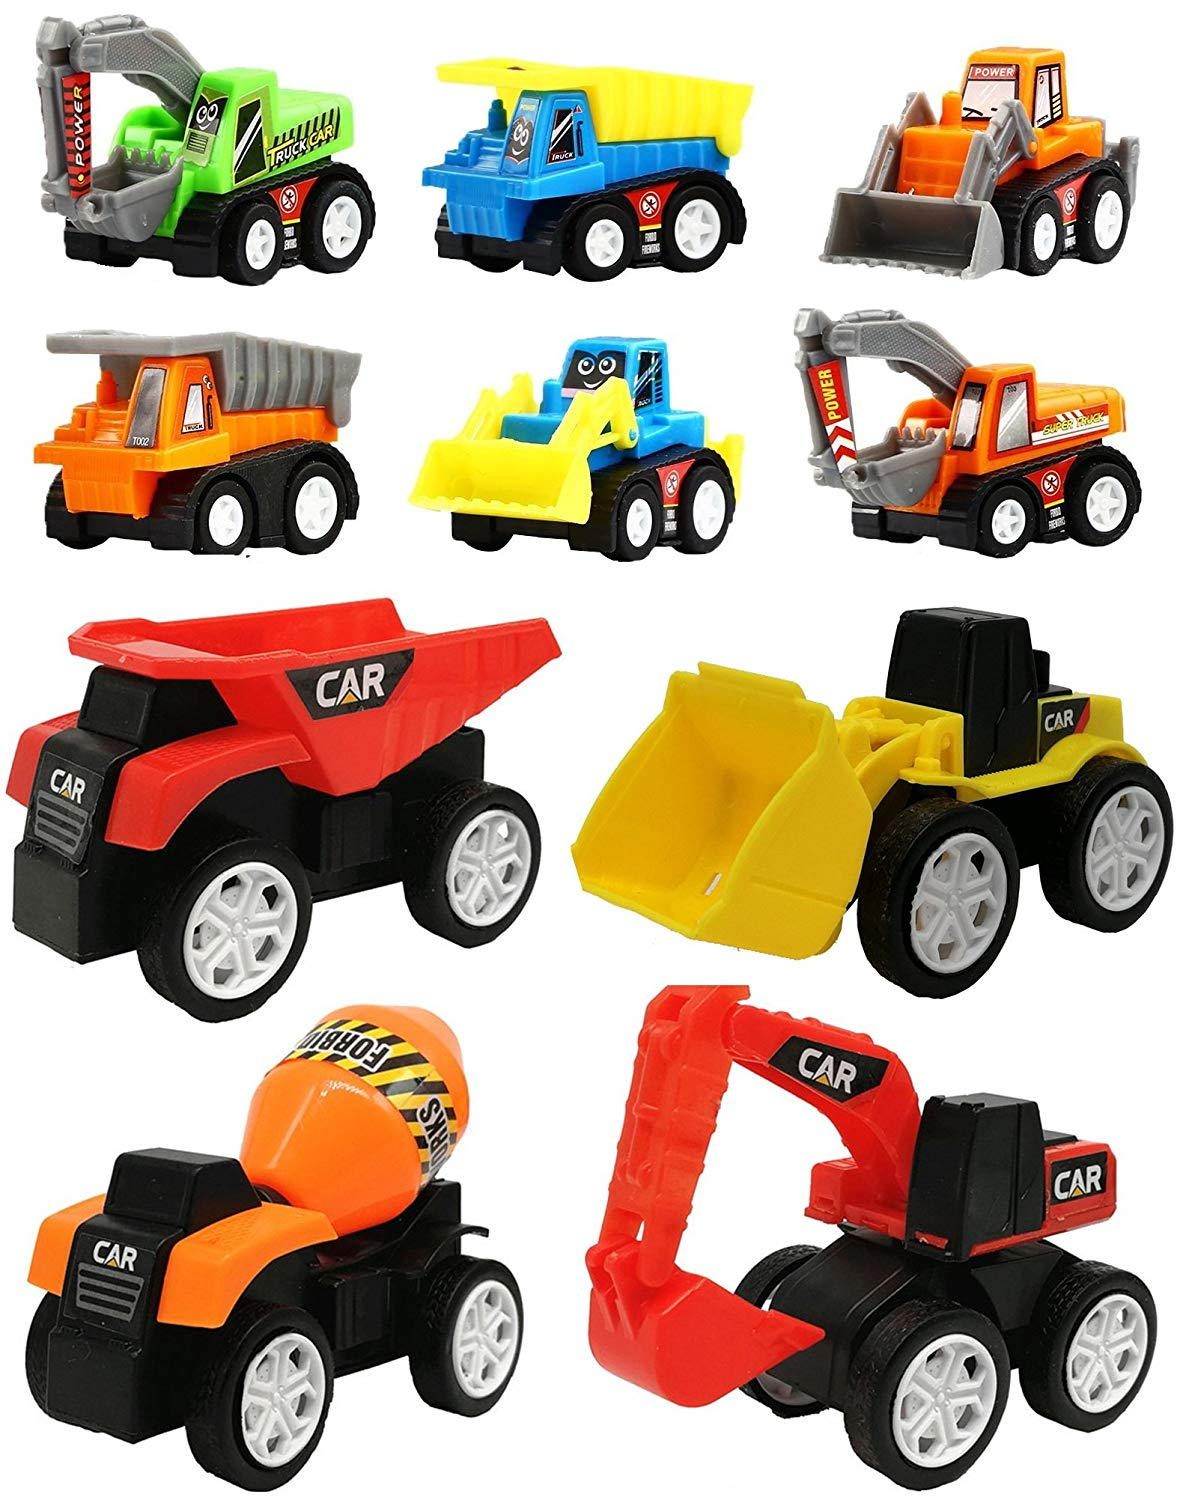 Buy Winone Pull Back Cars Mini Toy Cars 3 4 5 Year Old Boy Toys Car